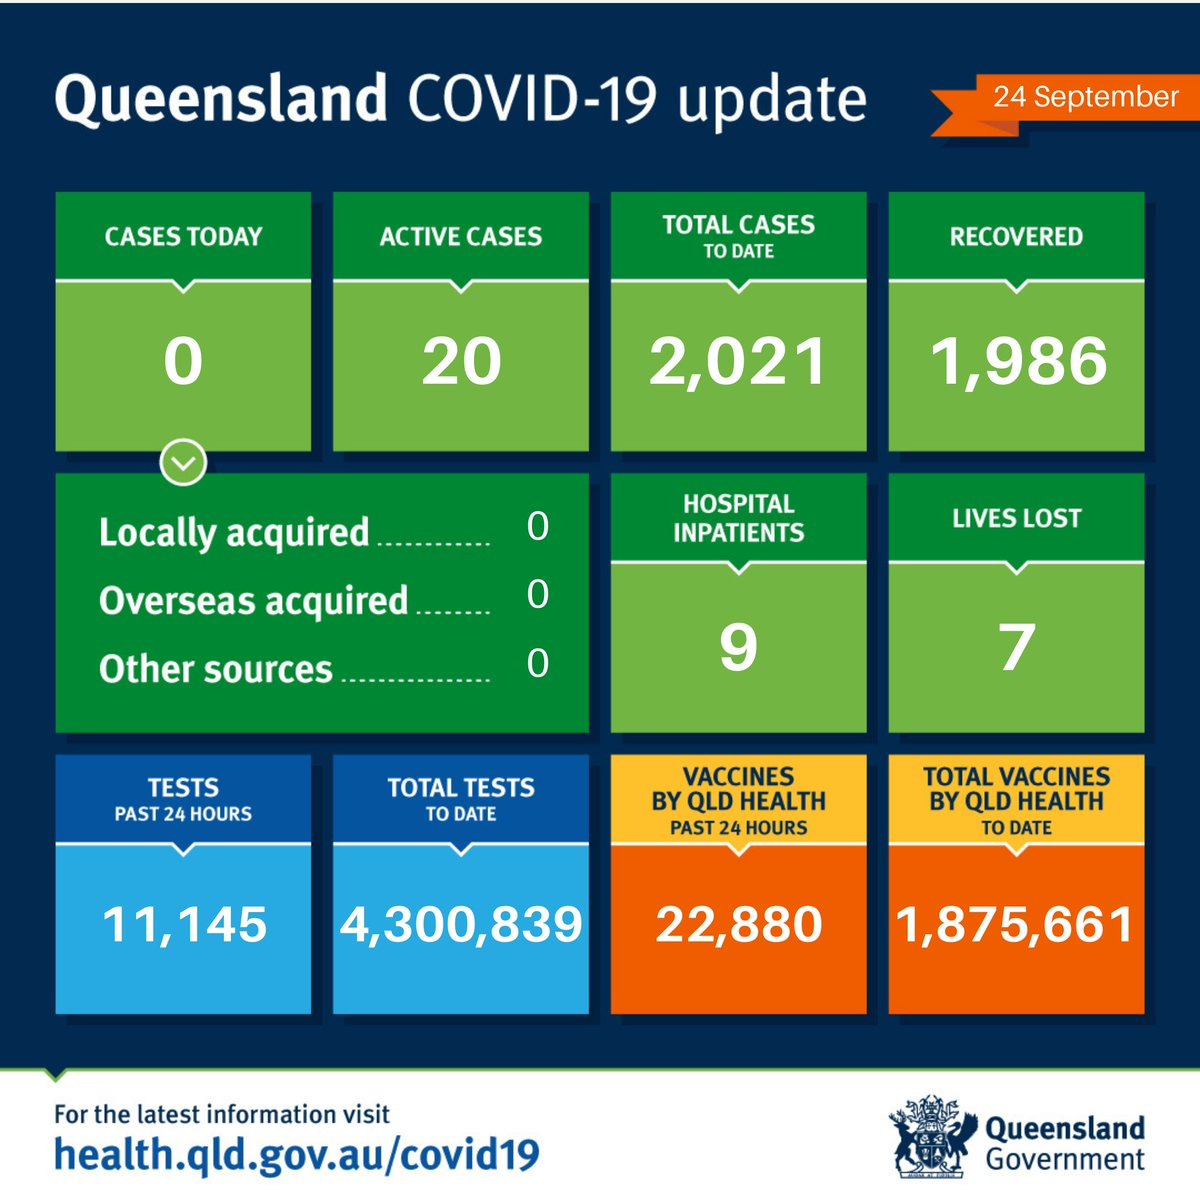 Queensland #COVID19 update 24/09/21 Today we have recorded 0 new cases of COVID-19. Detailed information about COVID-19 cases in Queensland, can be found here: health.qld.gov.au/covid-data